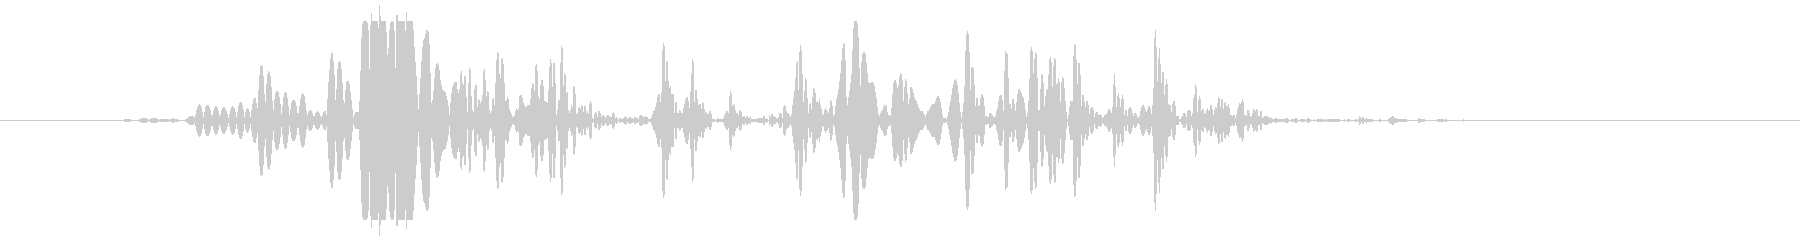 Swallowing sound,Drink Eat's unreproduced waveform